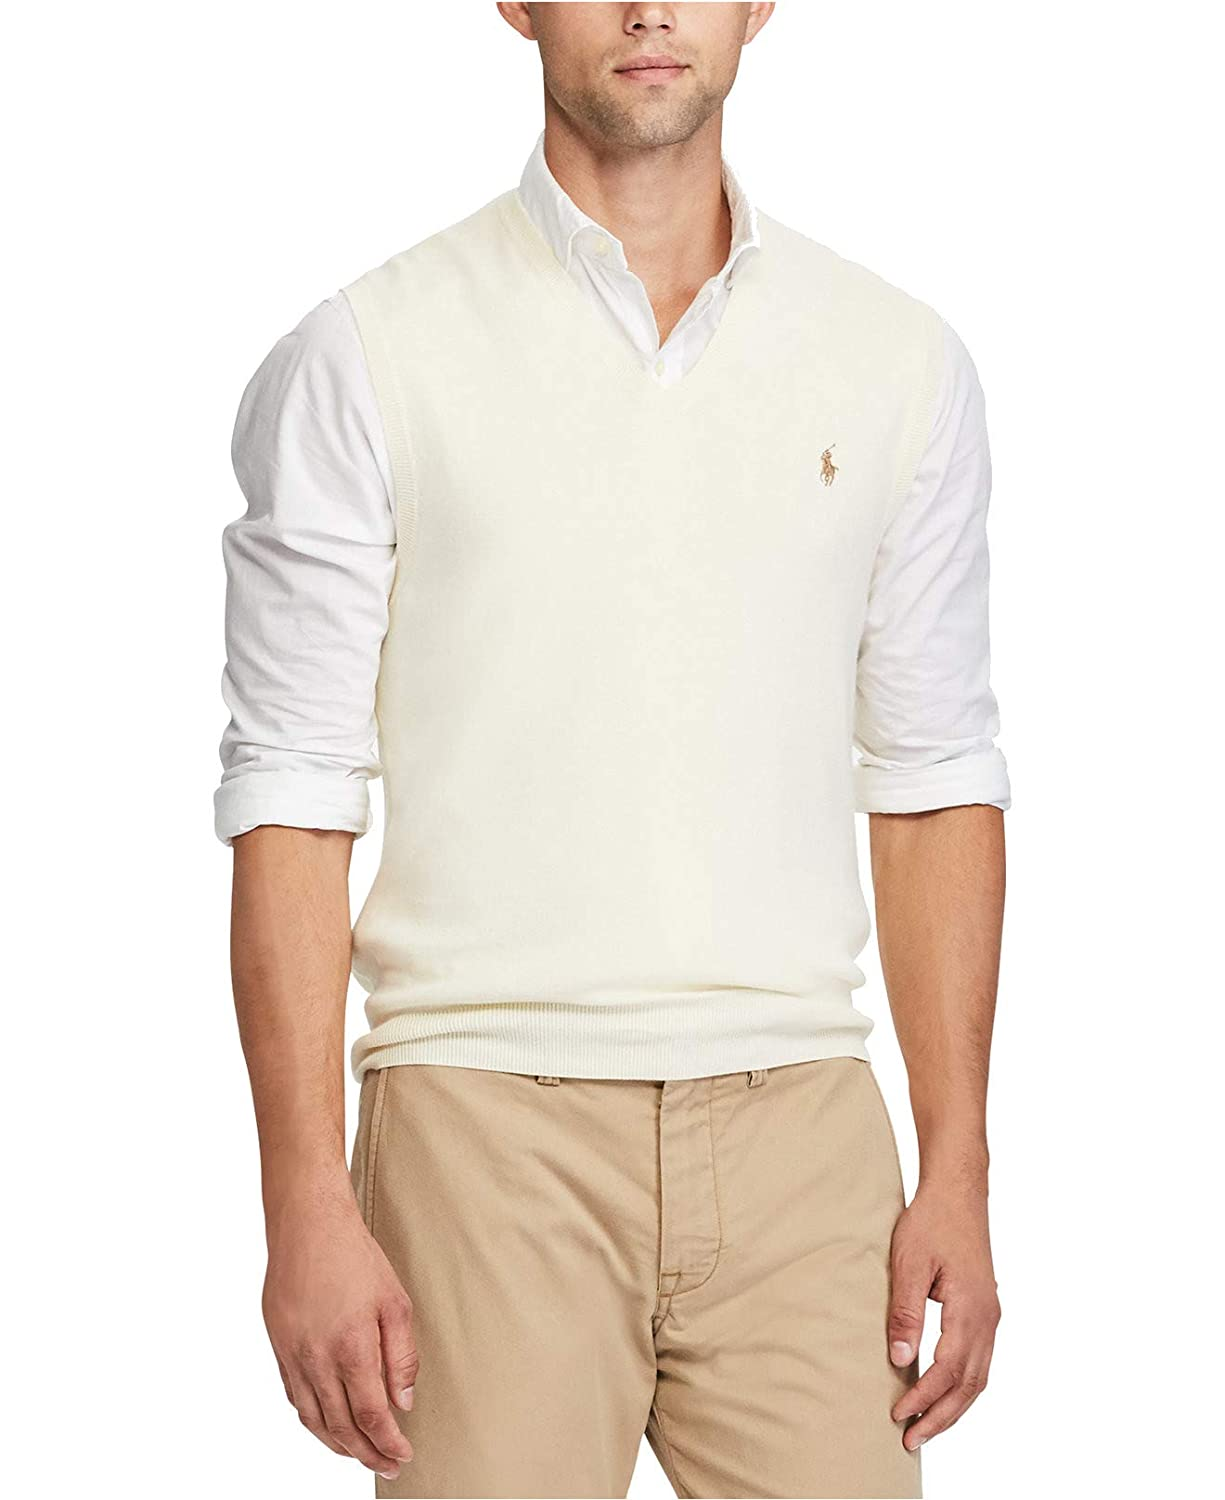 Cotton Polo Ribbed Trim Mens Ralph Lauren Cr Crescent rdQtsh